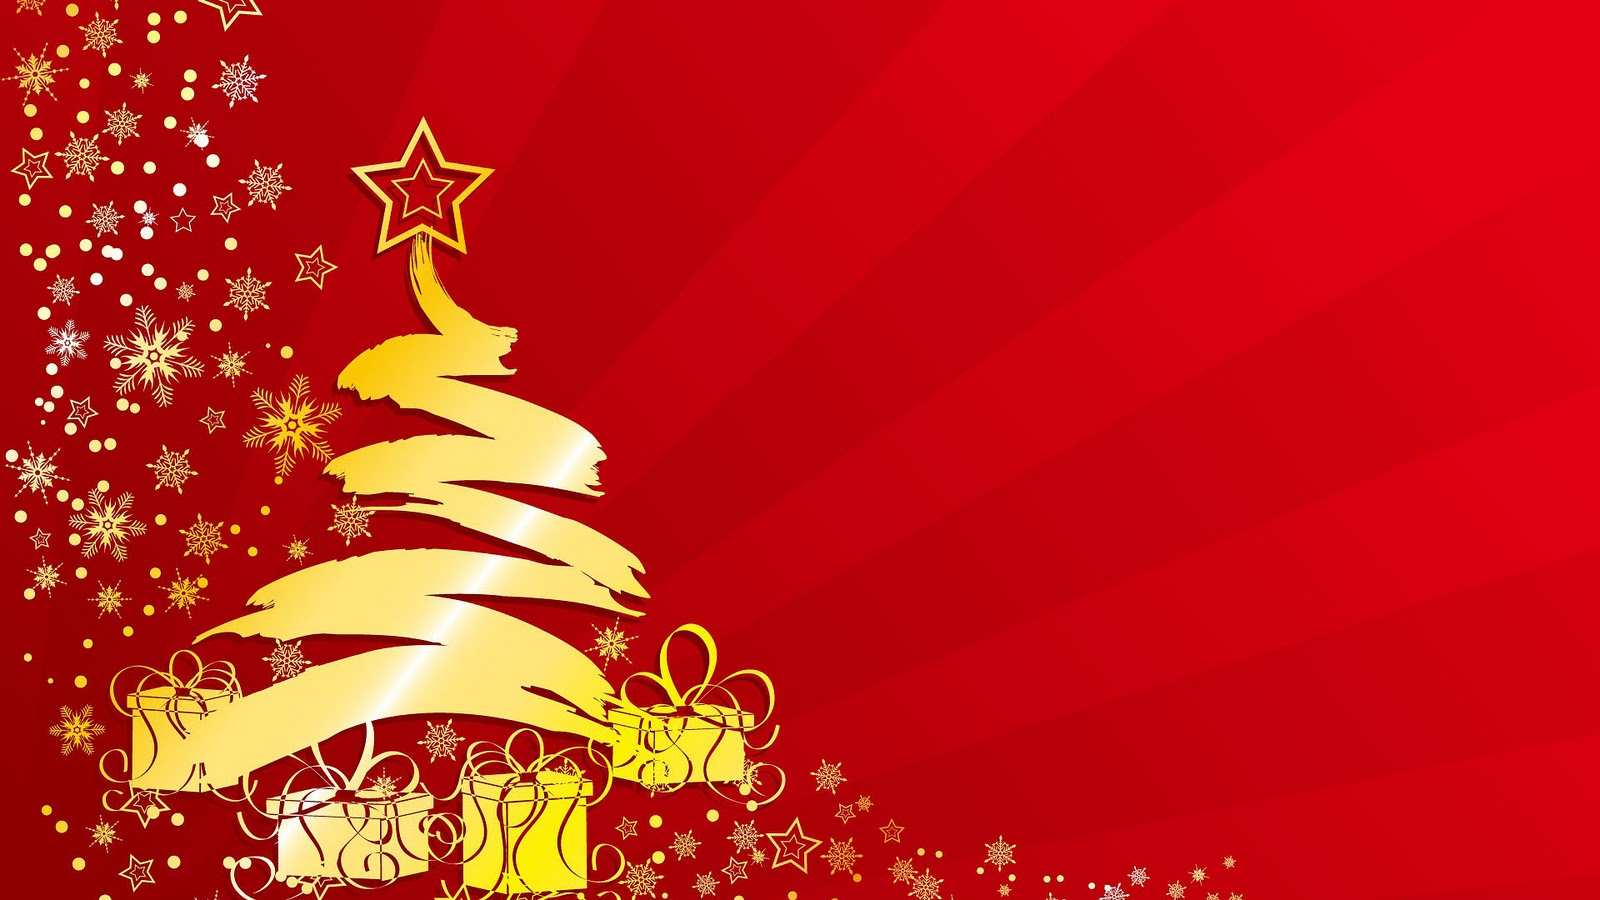 Christmas Background Images Wallpapers9 1600x900